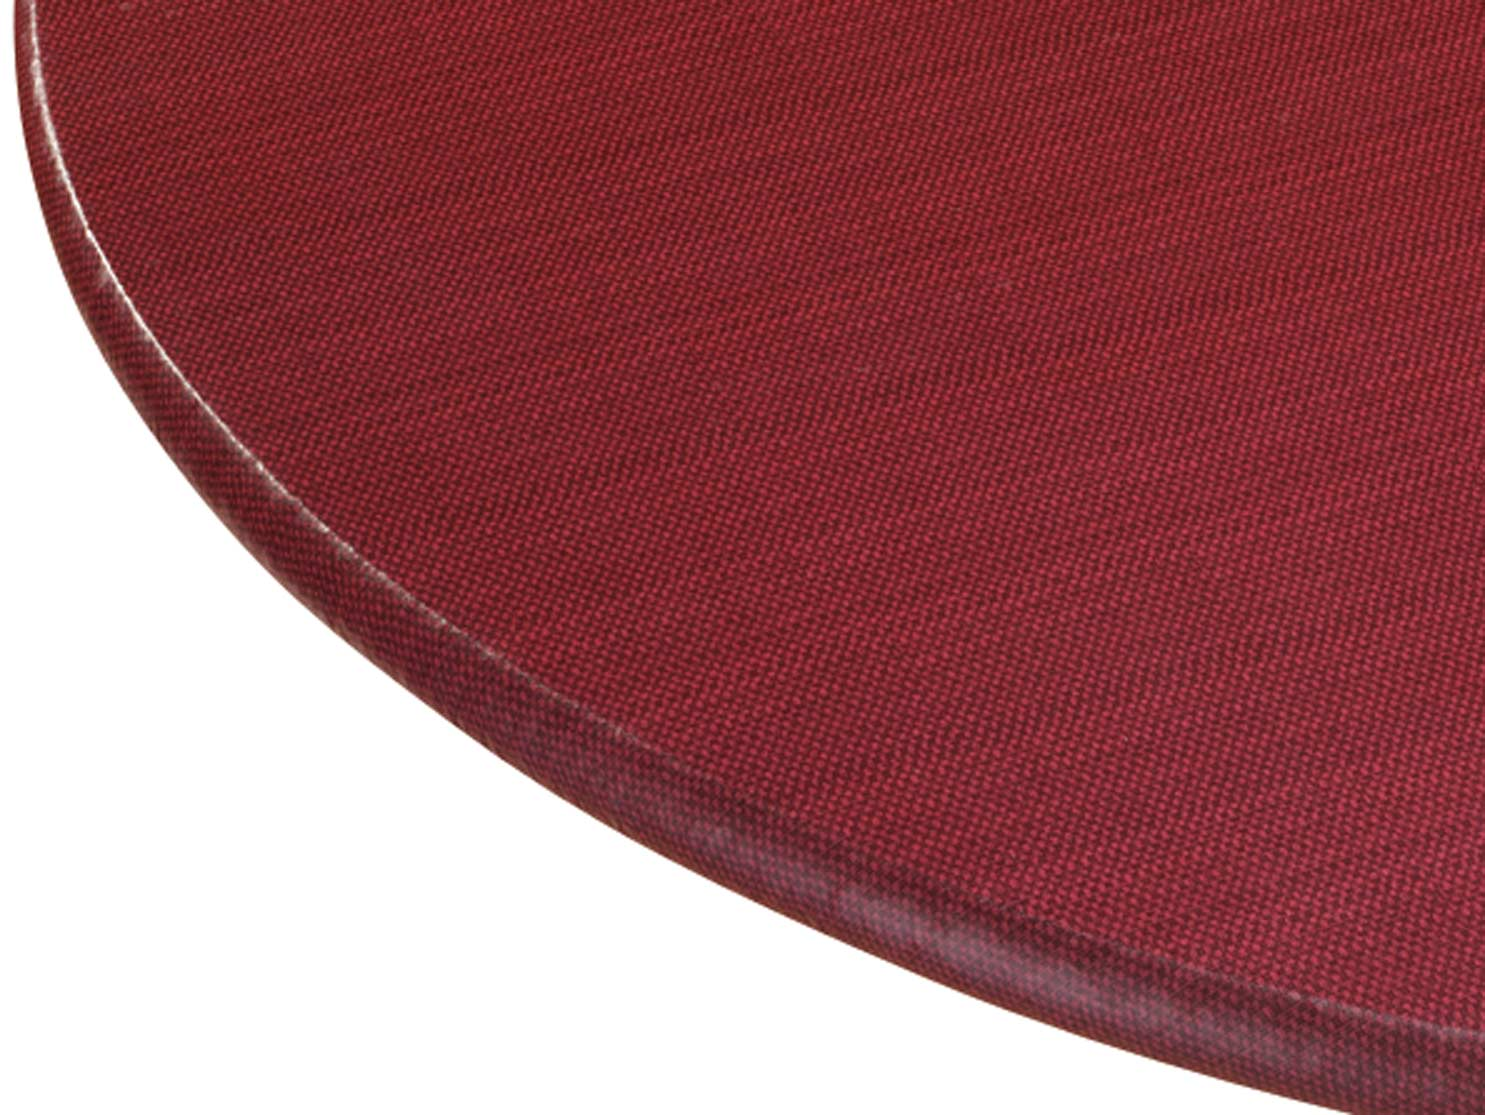 Miles Kimball Classic Weave Vinyl Elasticized Fitted Table Cover